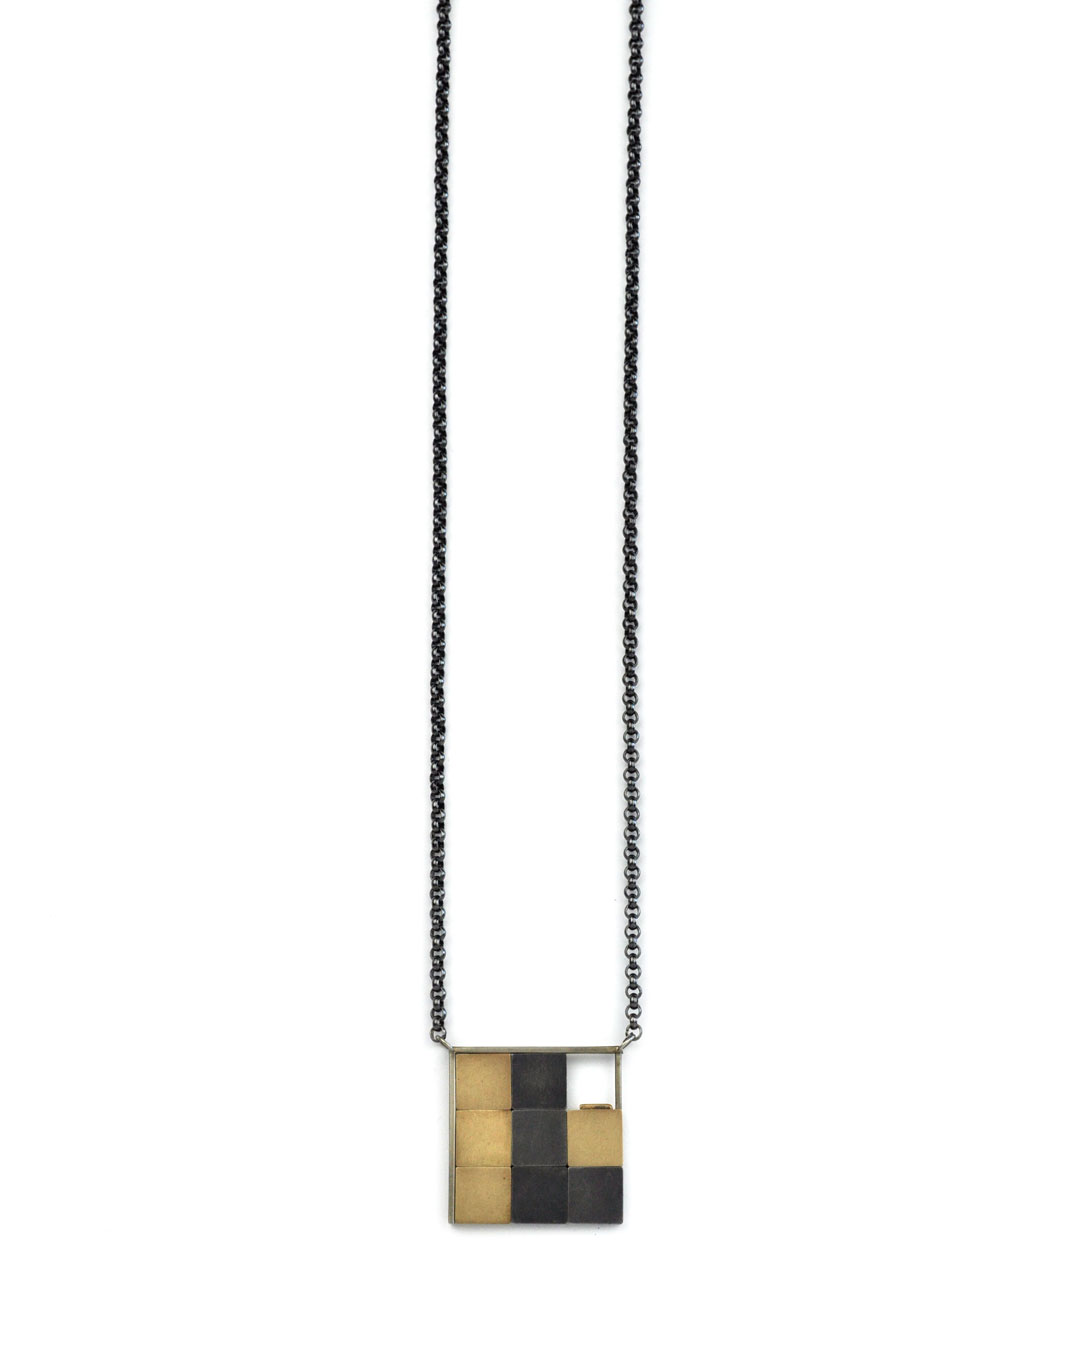 Herman Hermsen, Expensive Game, 1995, pendant; 18ct white gold, 18ct yellow gold, silver, 440 x 100 x 3 mm, €3100